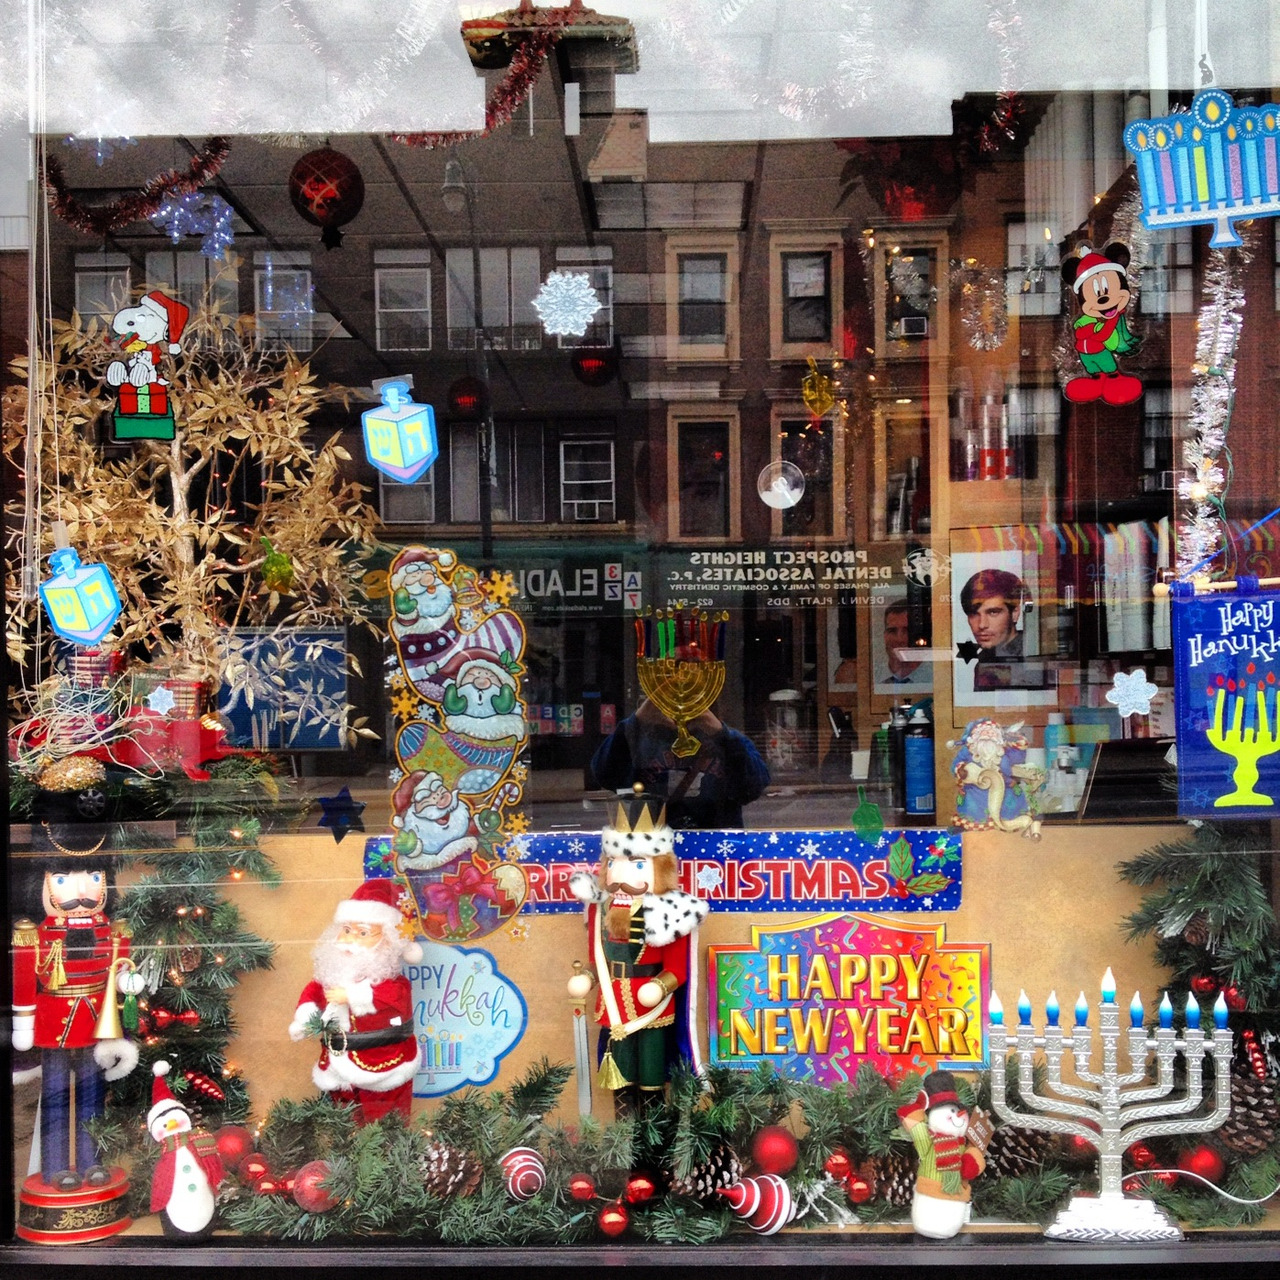 This window on Flatbush sure is the bees knees! Share with us some of your favorite neighborhood holiday windows!